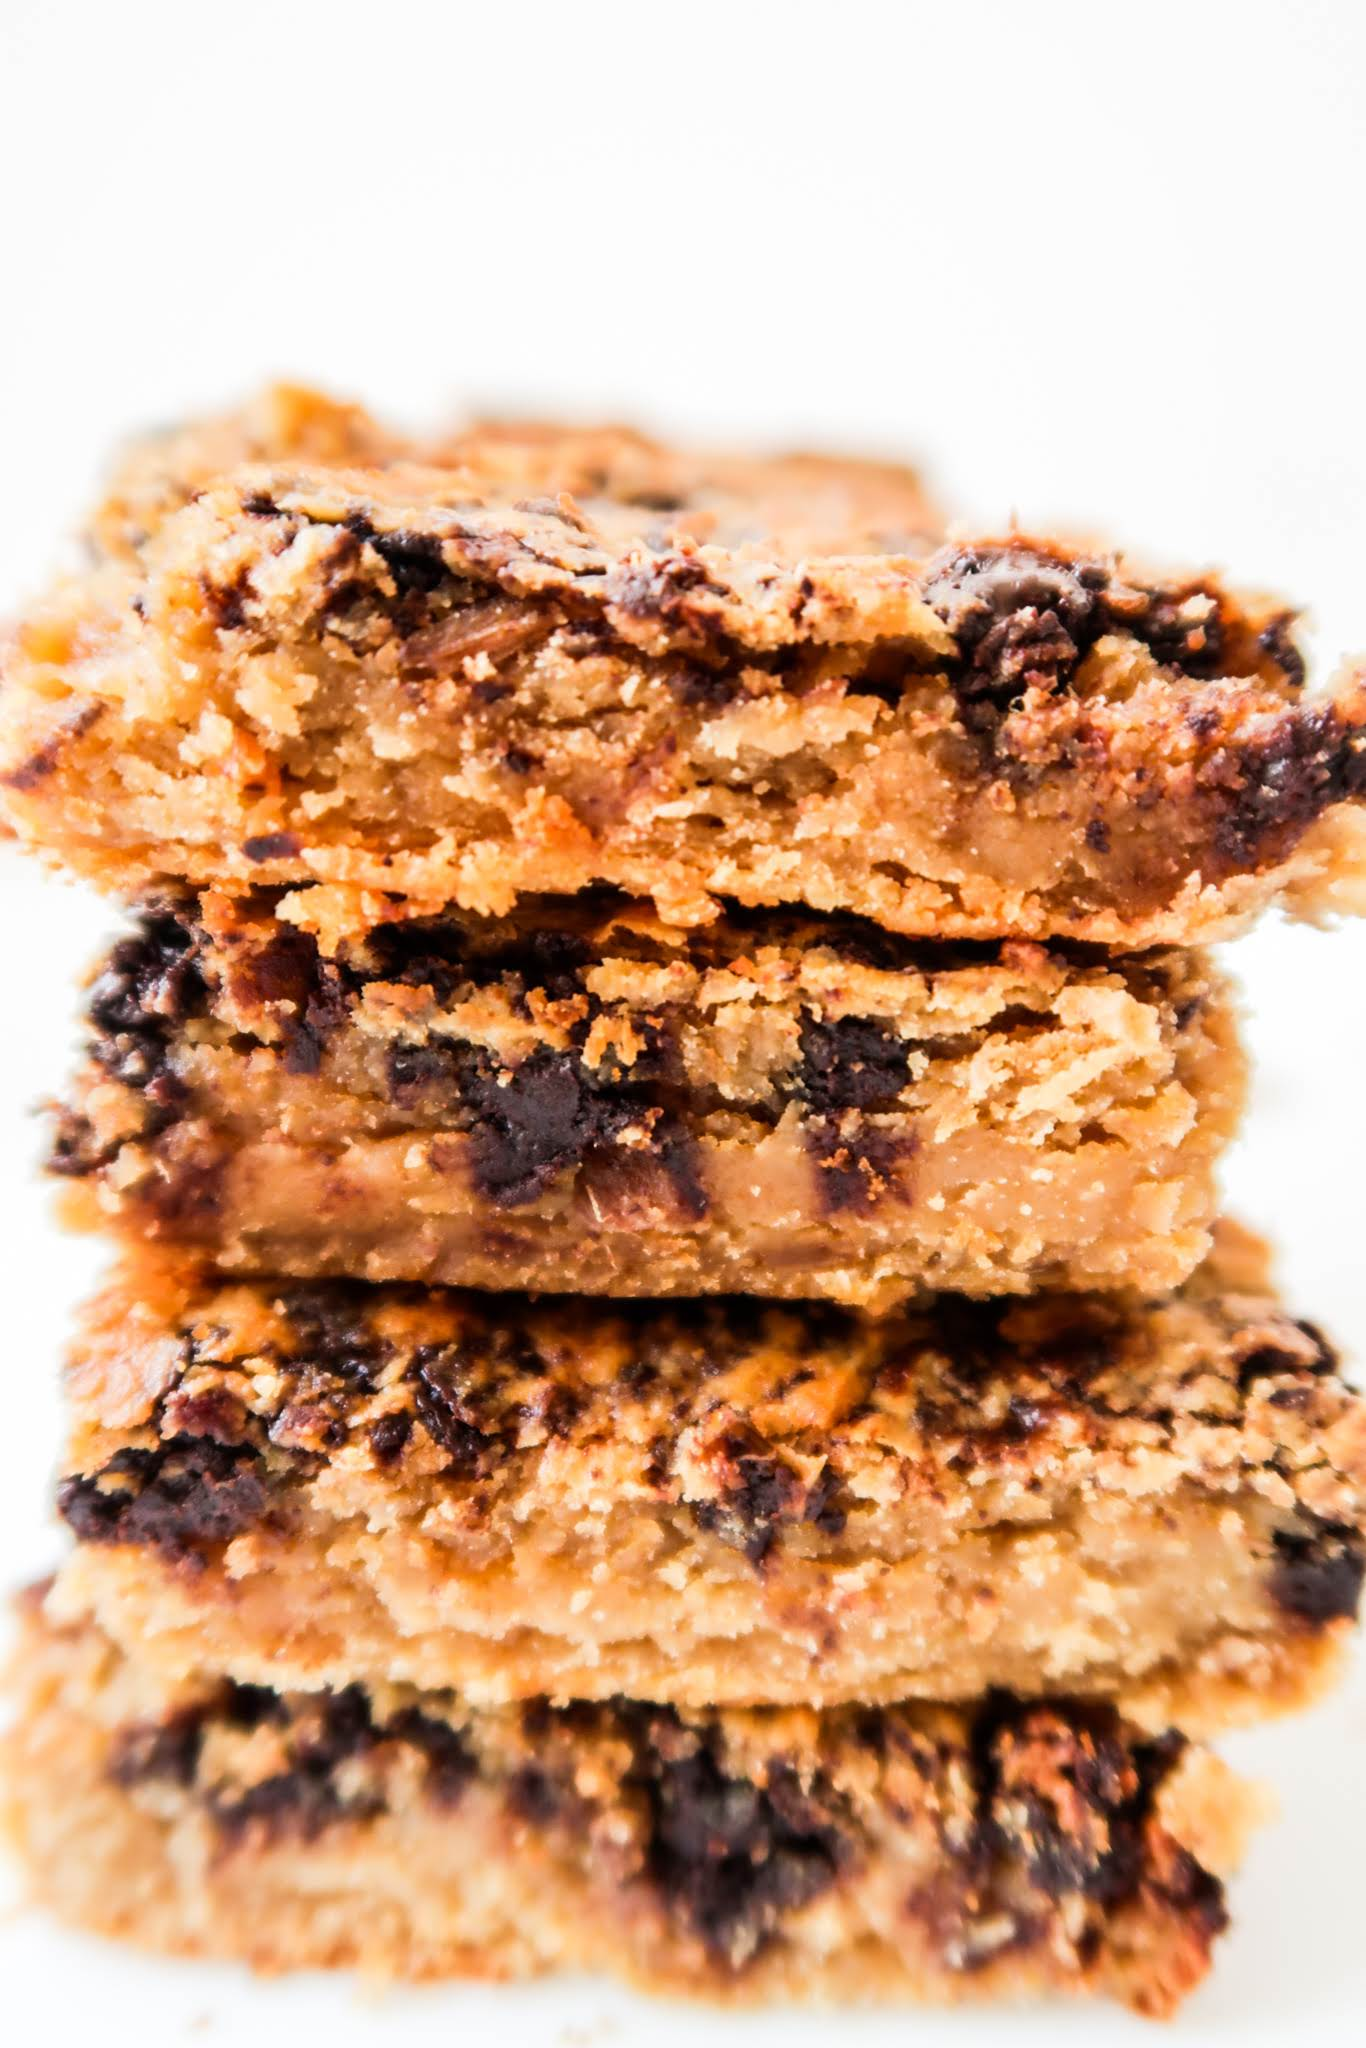 Easy vegan chickpea blondies recipe! These healthy peanut butter blondies with chocolate chips are flourless, dairy-free, gluten-free and addictive - you're going to want to eat everything!